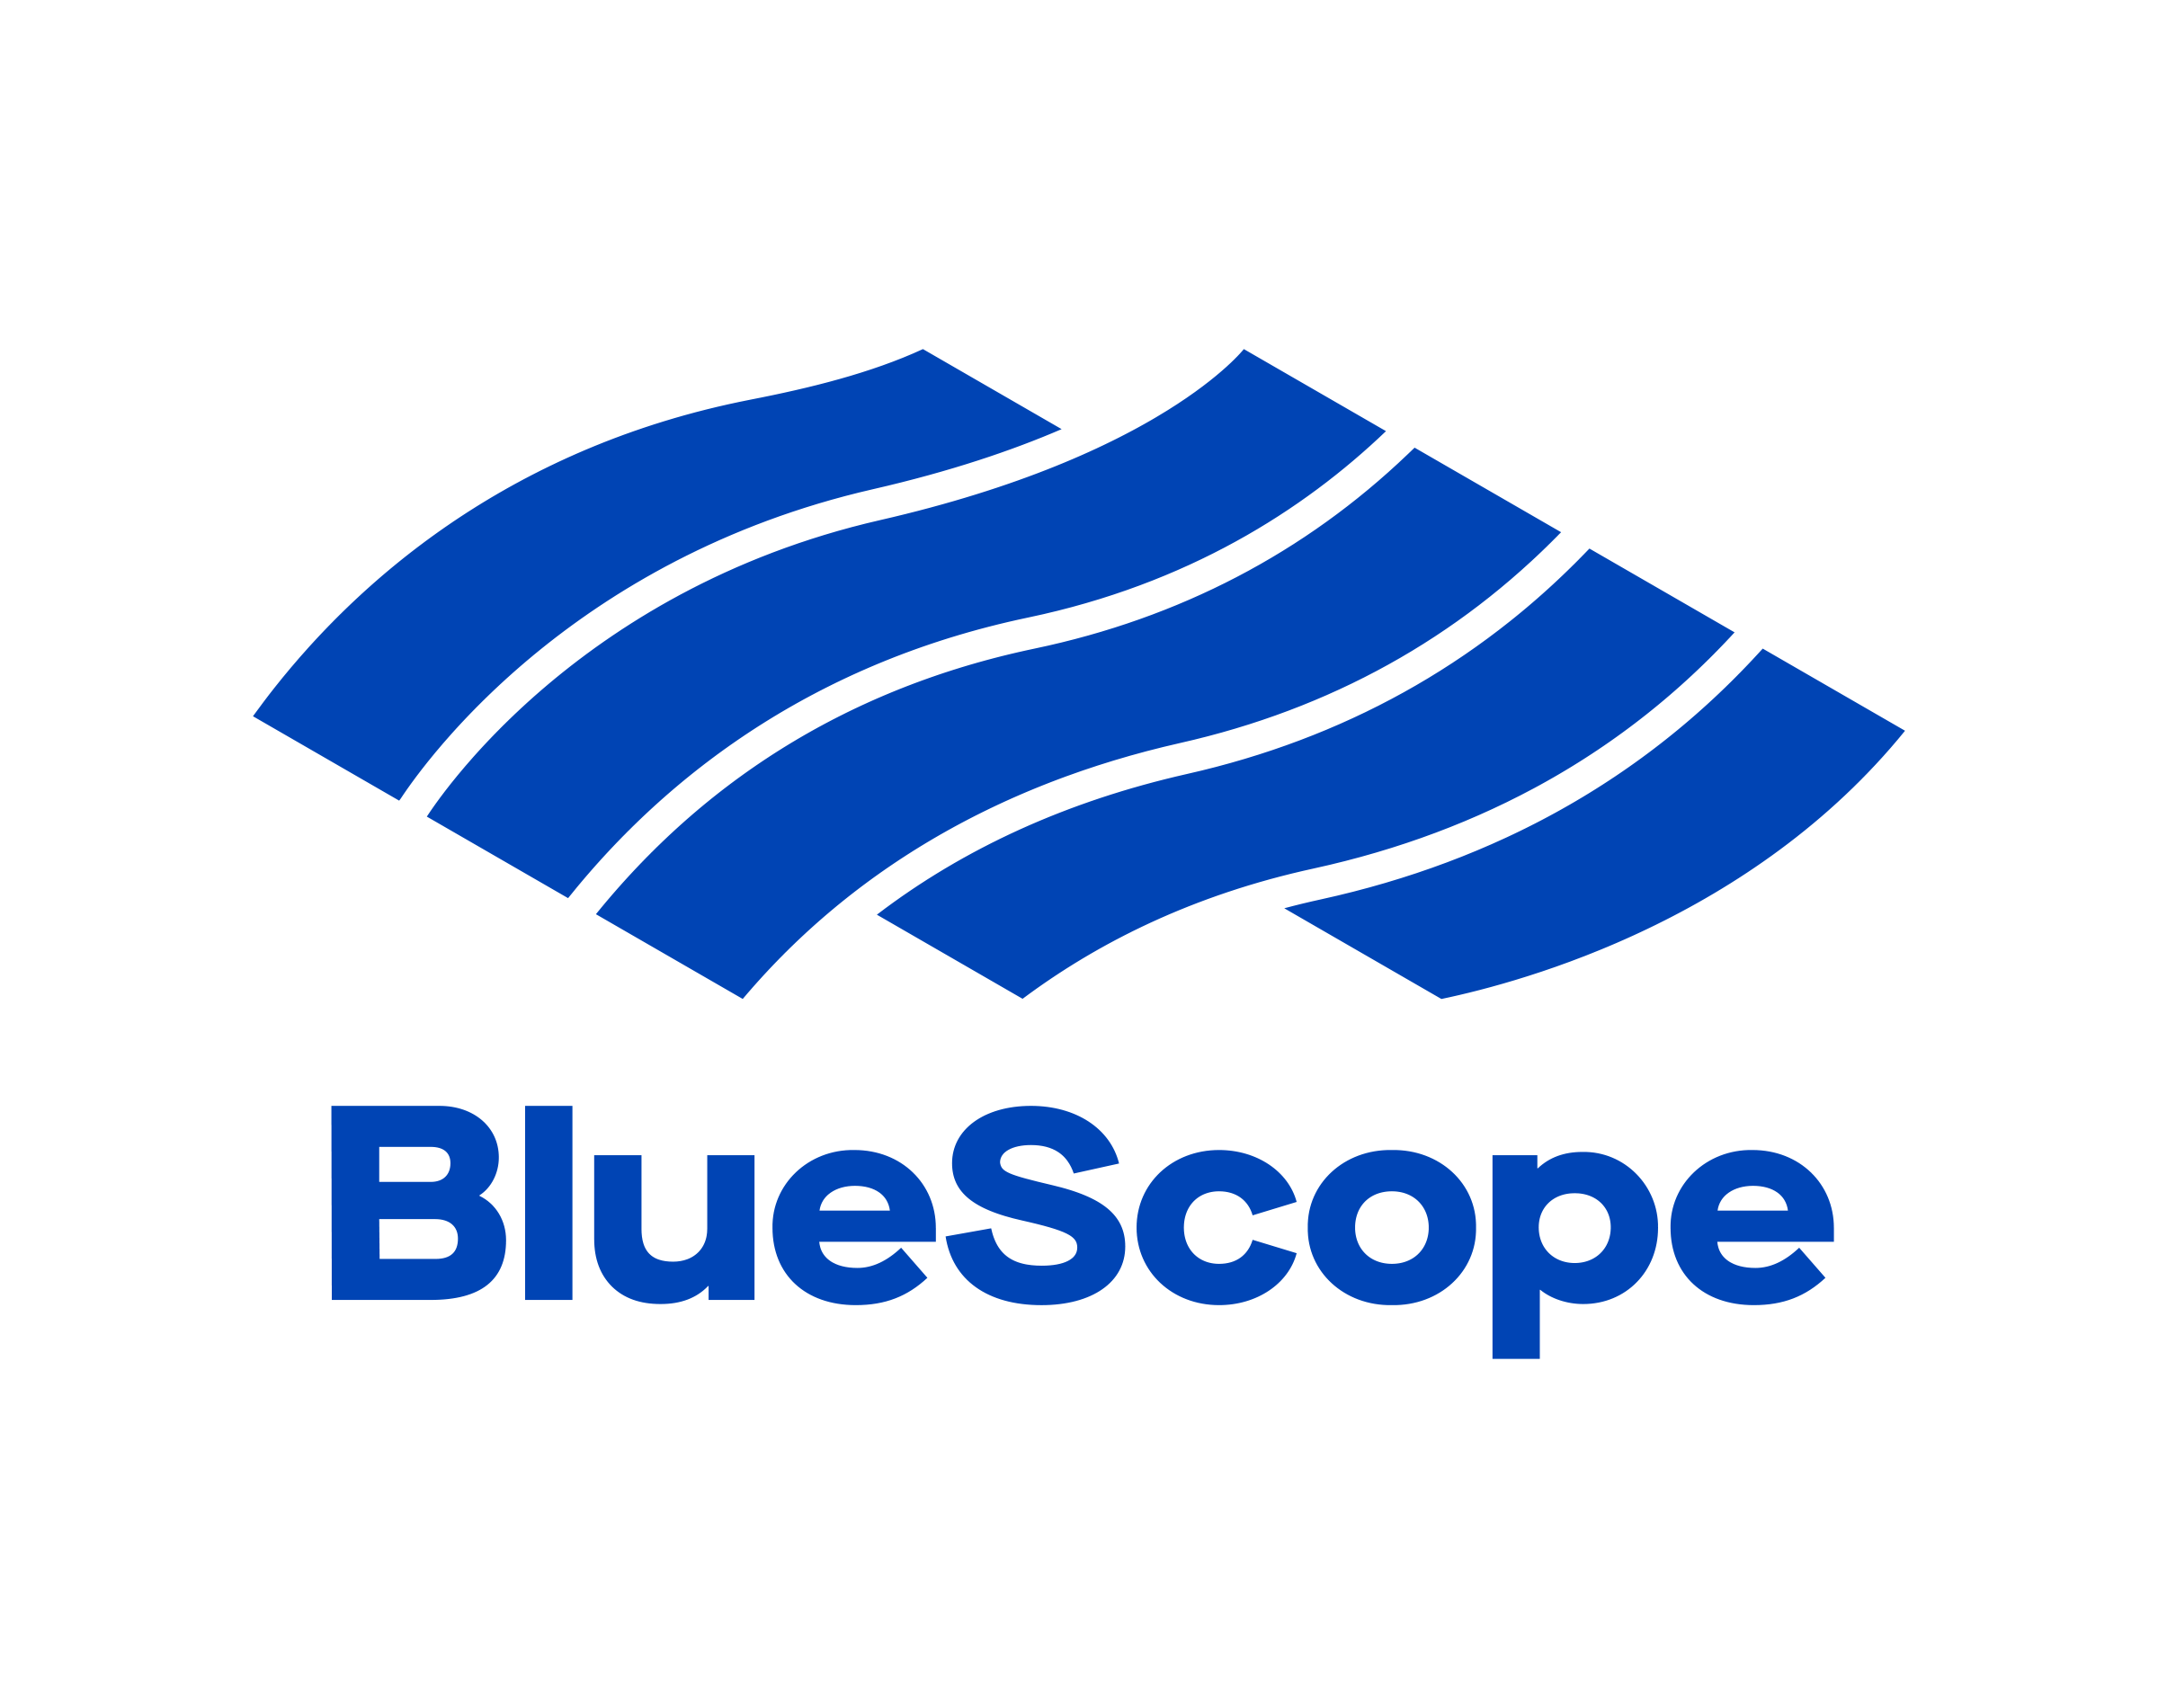 Learn how Eagle Point's Pinnacle Series e-learning solution helped BlueScope in this case study.